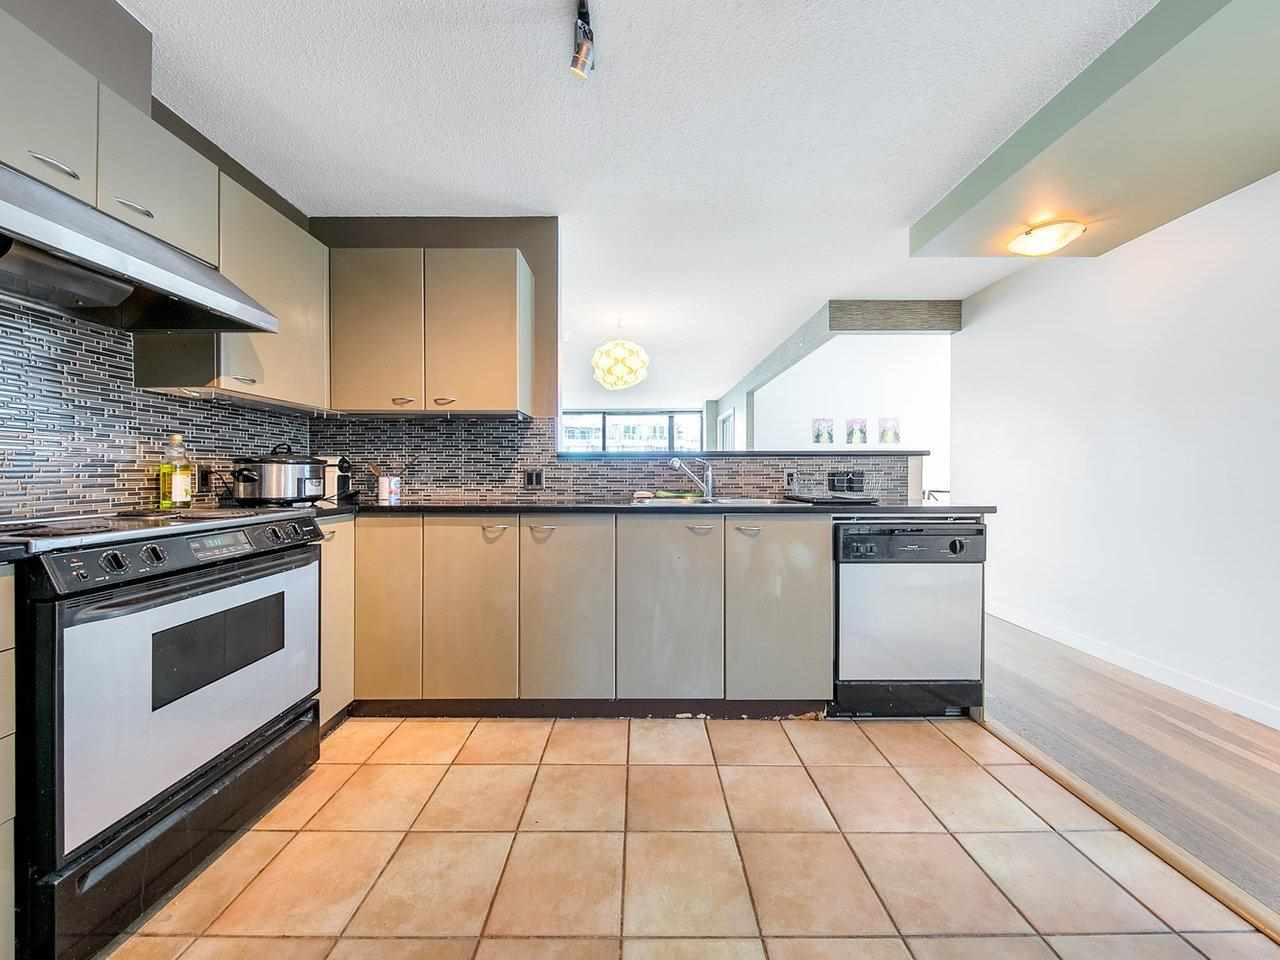 2701 1331 ALBERNI STREET - West End VW Apartment/Condo for sale, 3 Bedrooms (R2576100) - #10